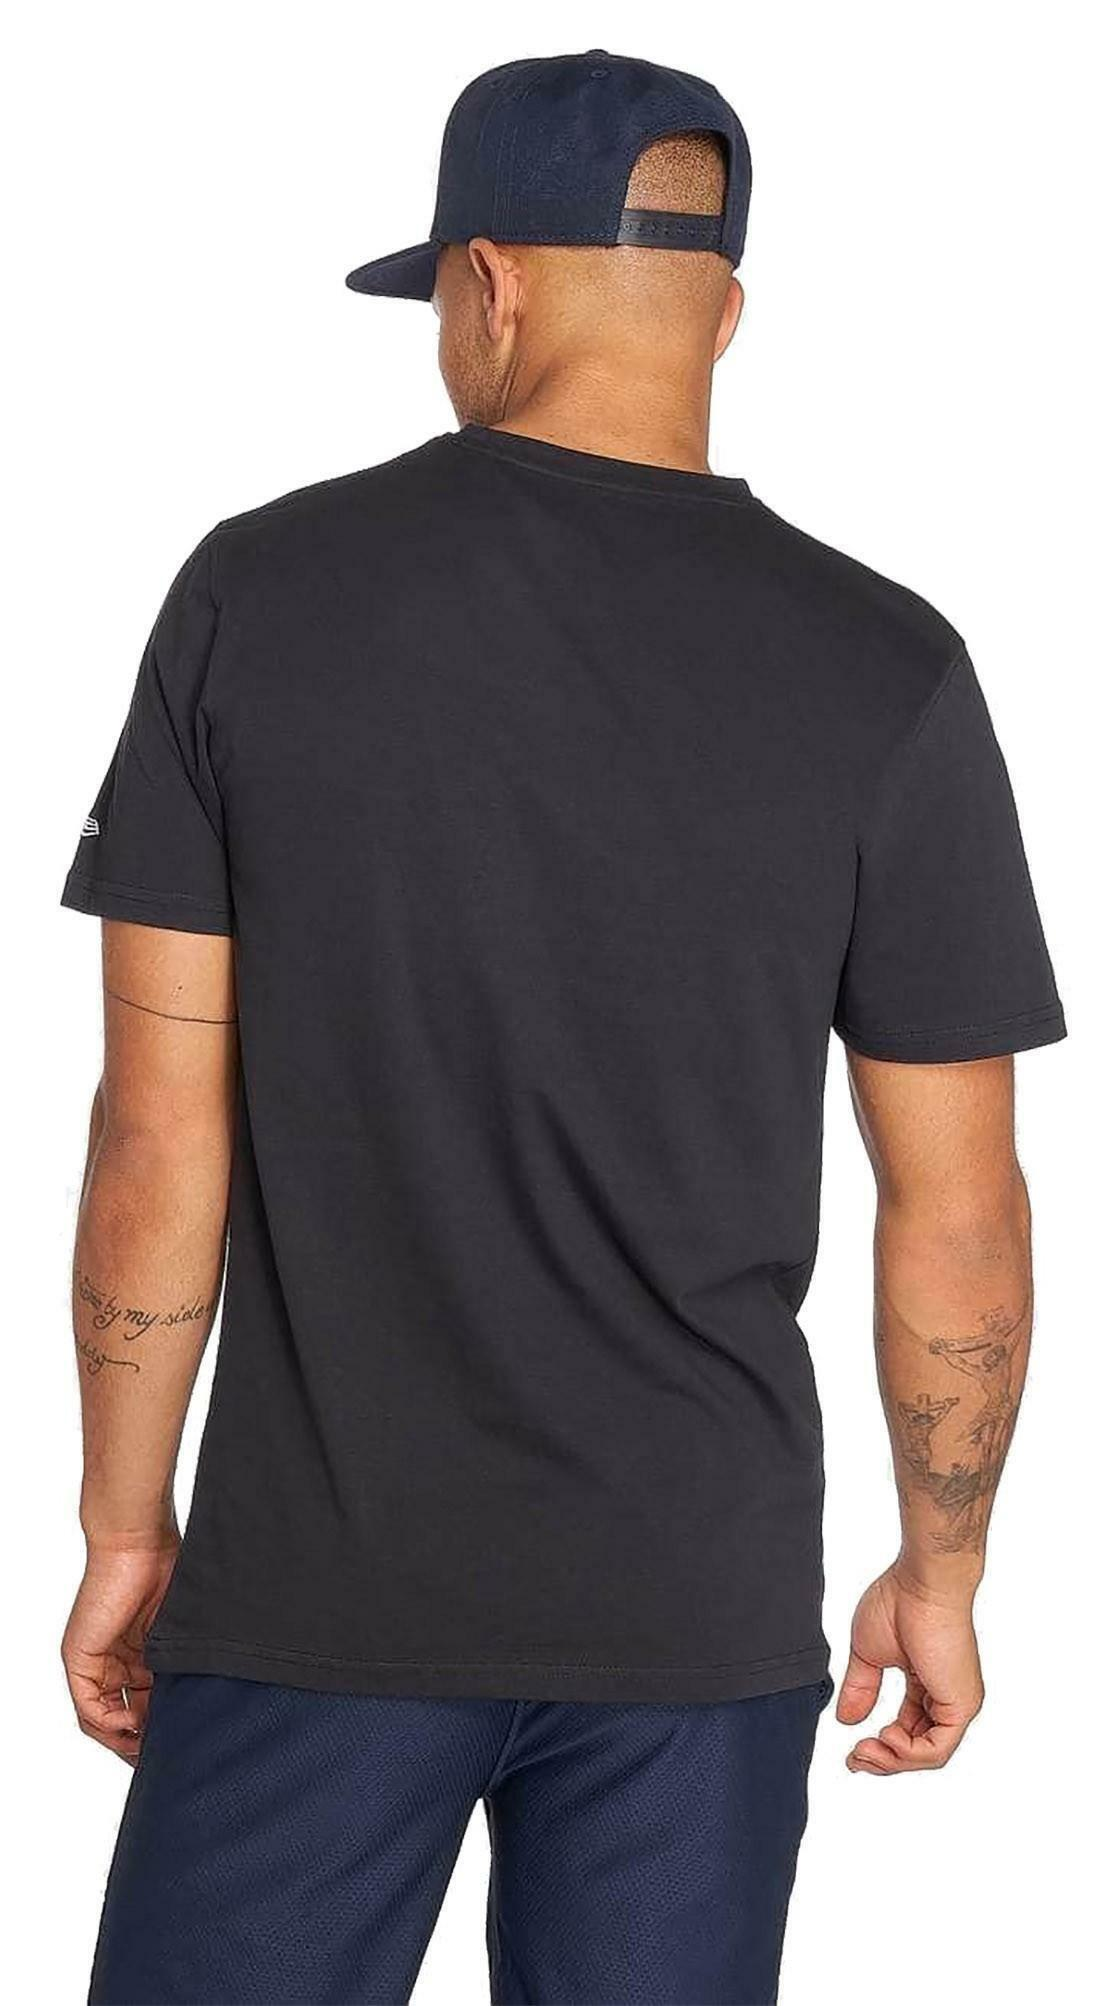 new era new era team apparel infill logo t-shirt uomo blu 11569445